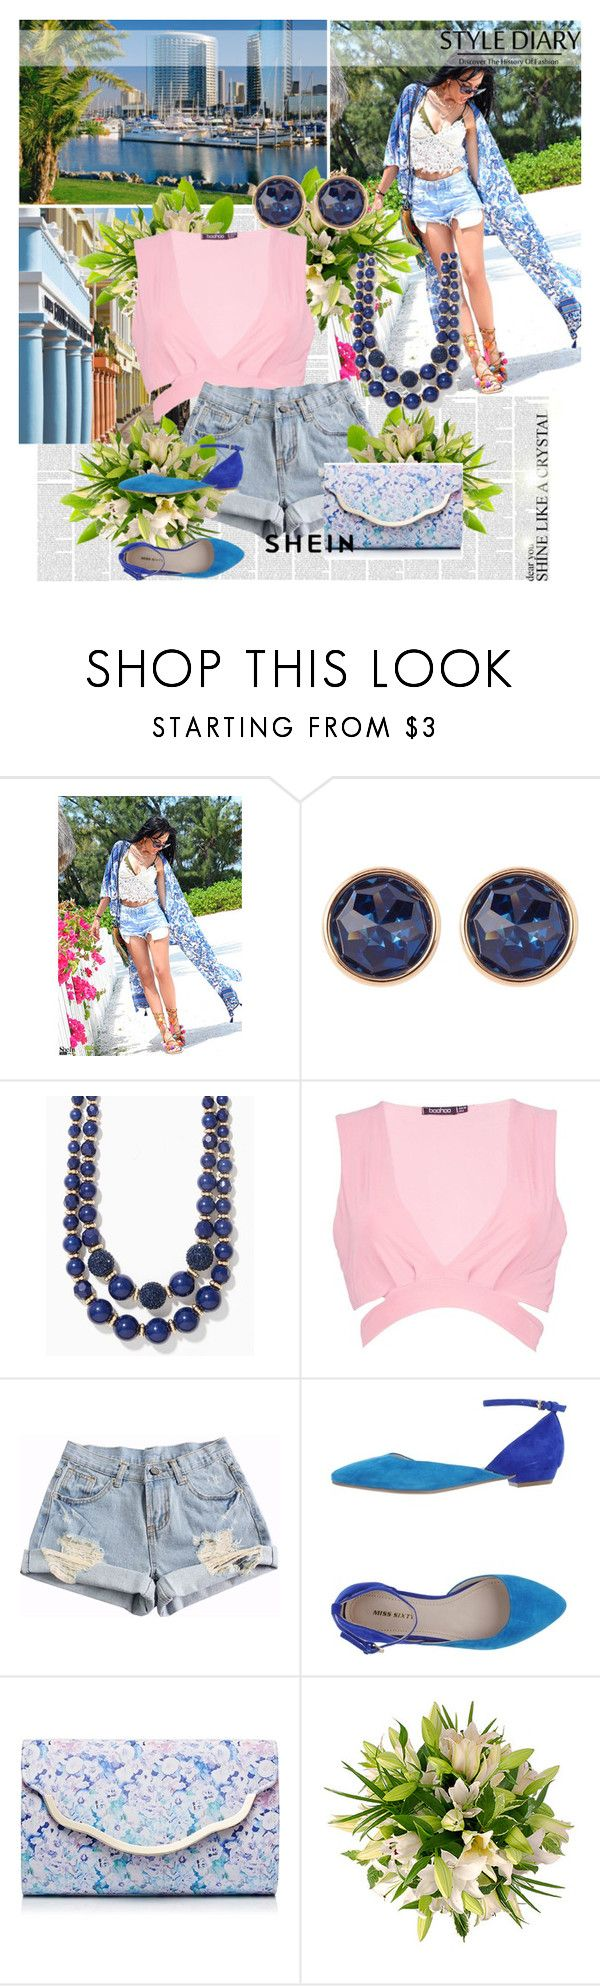 """""""sheinside"""" by jelena-si ❤ liked on Polyvore featuring Susan Caplan Vintage, Boohoo, Miss Sixty and Forever New"""